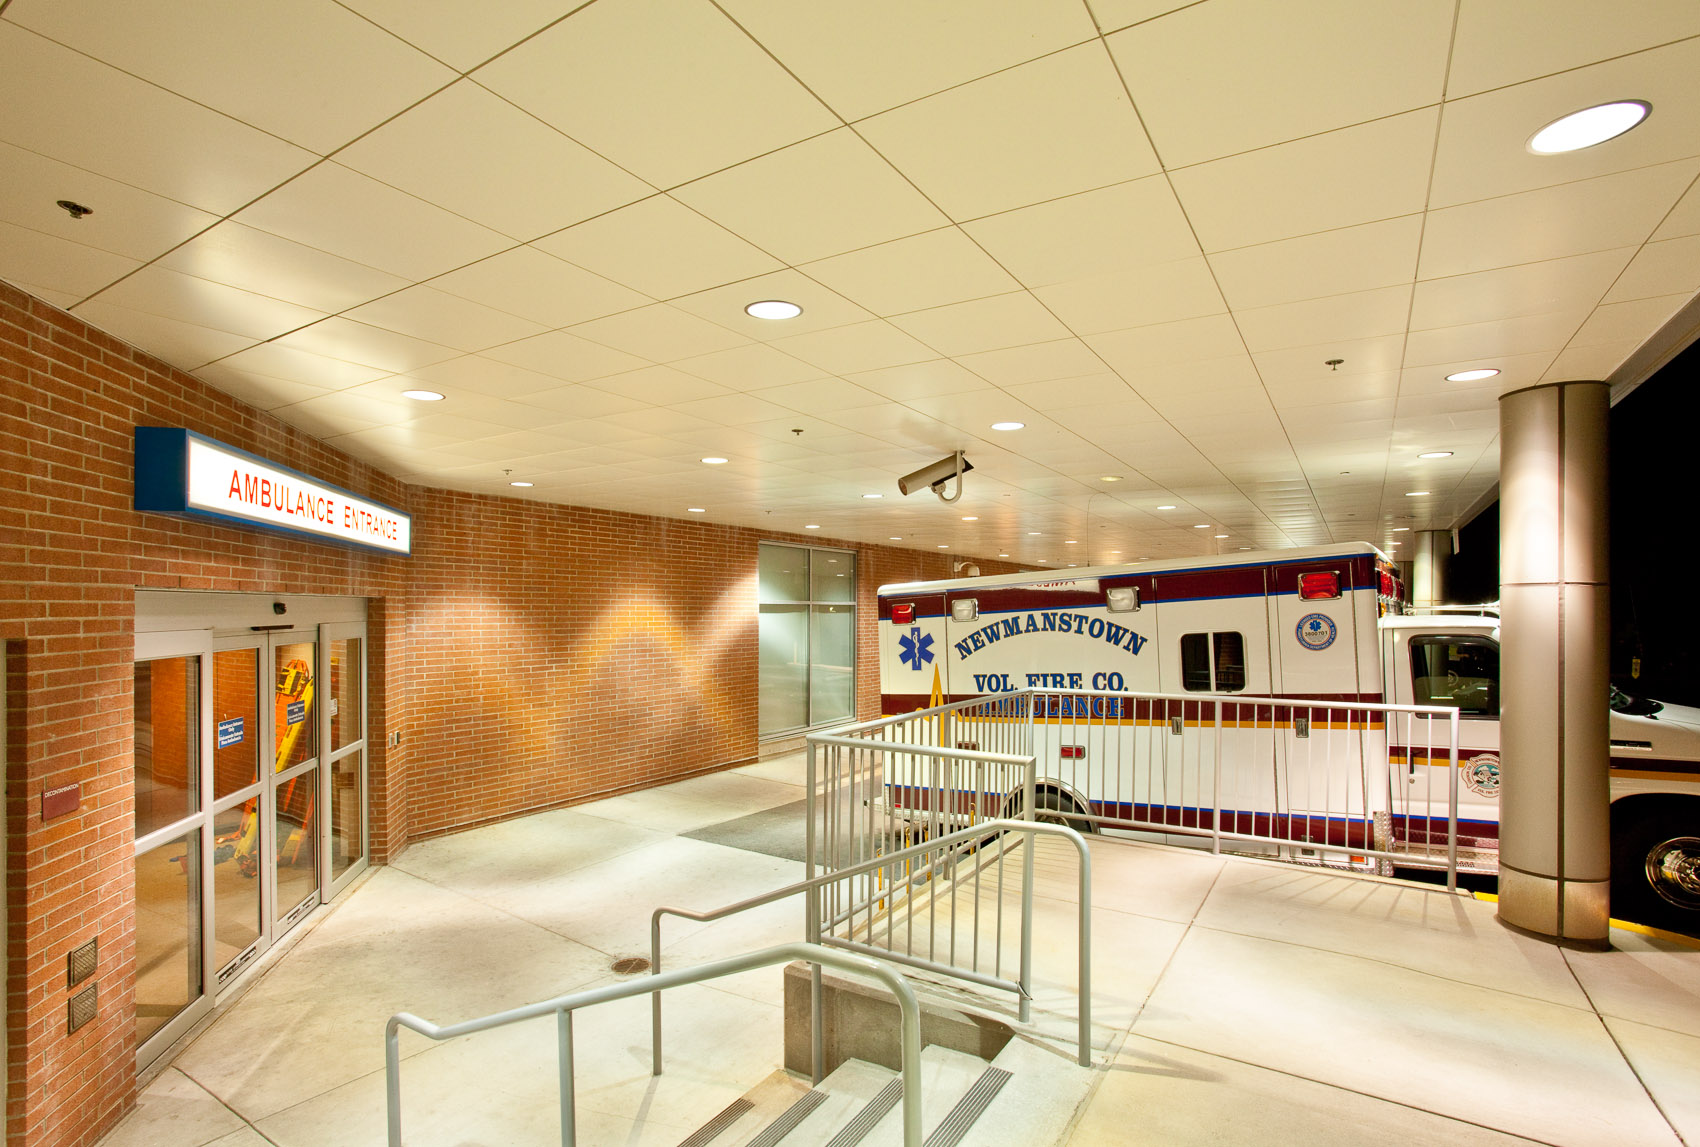 Ambulance Entrance at the Good Samaritan Hospital in Lebanon, PA | J. Eldon Zimmerman Photography | Lancaster, PA Architecture Photographer